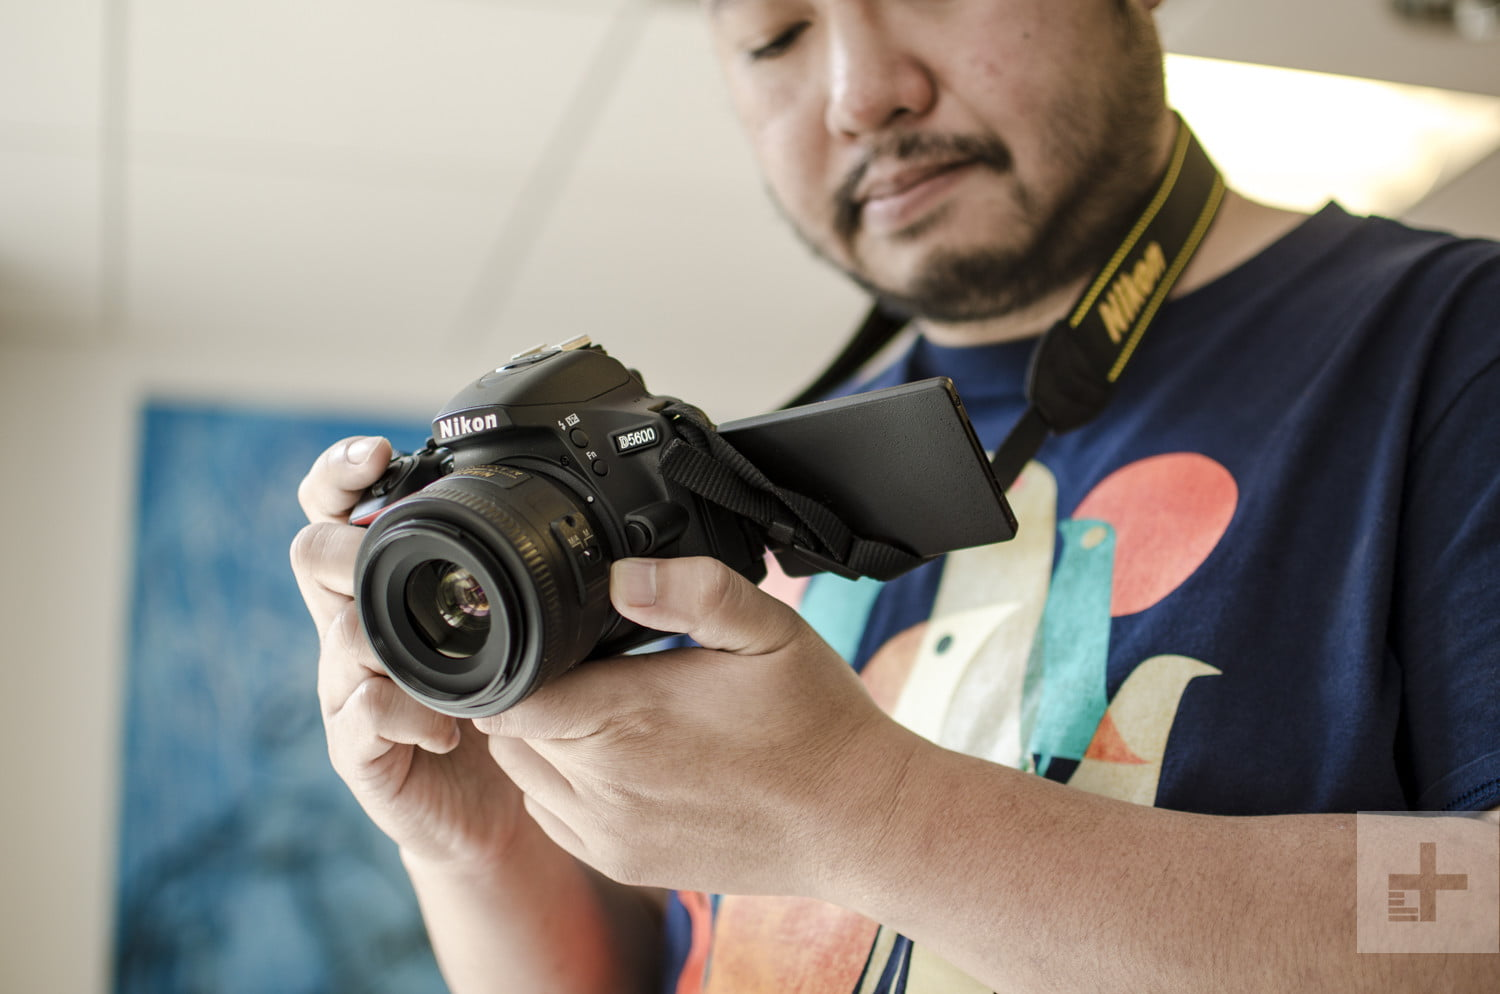 The Best Cameras For Students for 2019, from $600 to $2,000